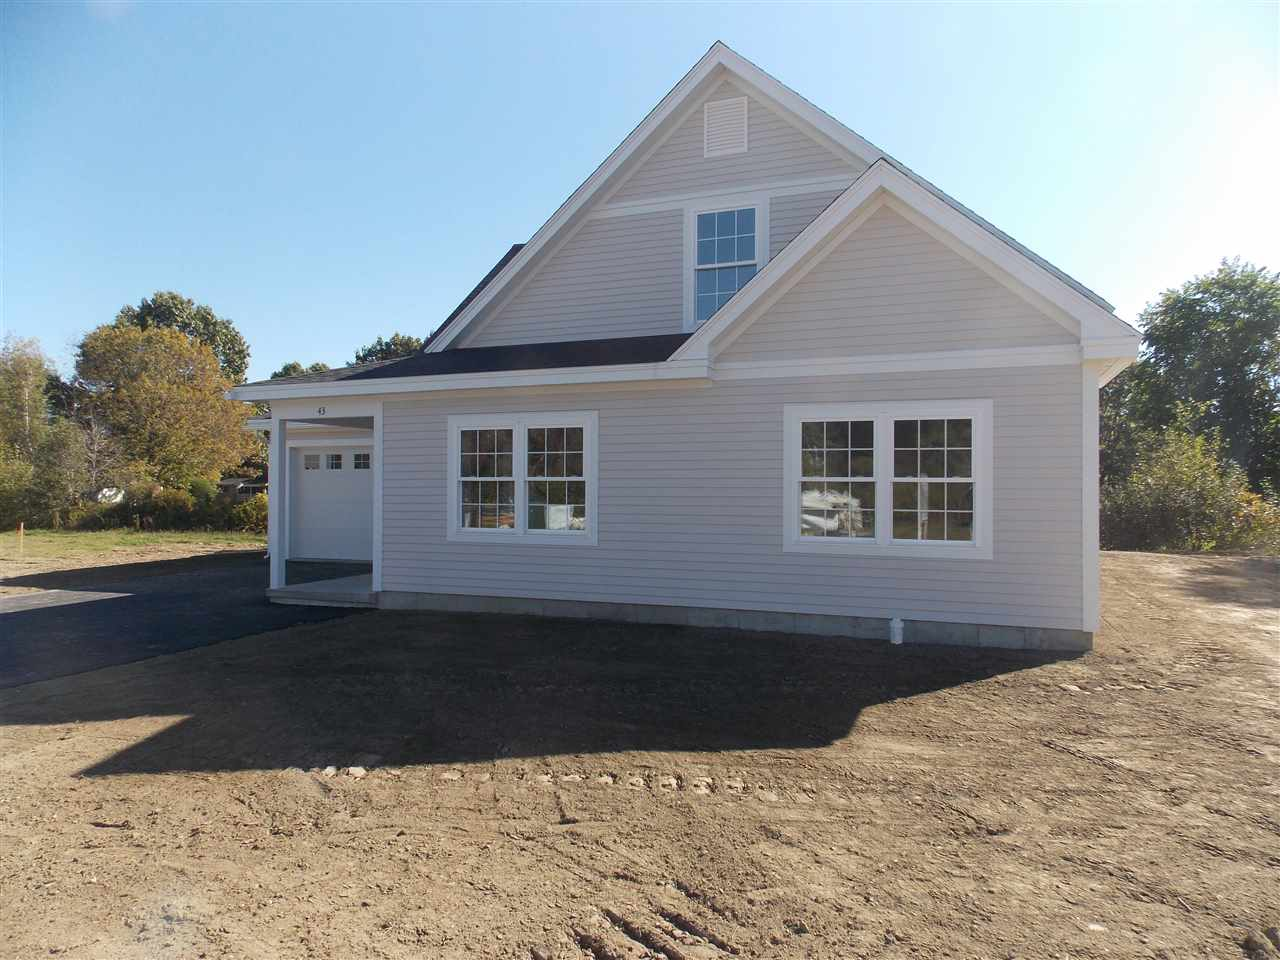 VILLAGE OF WILDER IN TOWN OF HARTFORD VT Home for sale $$344,900 | $151 per sq.ft.